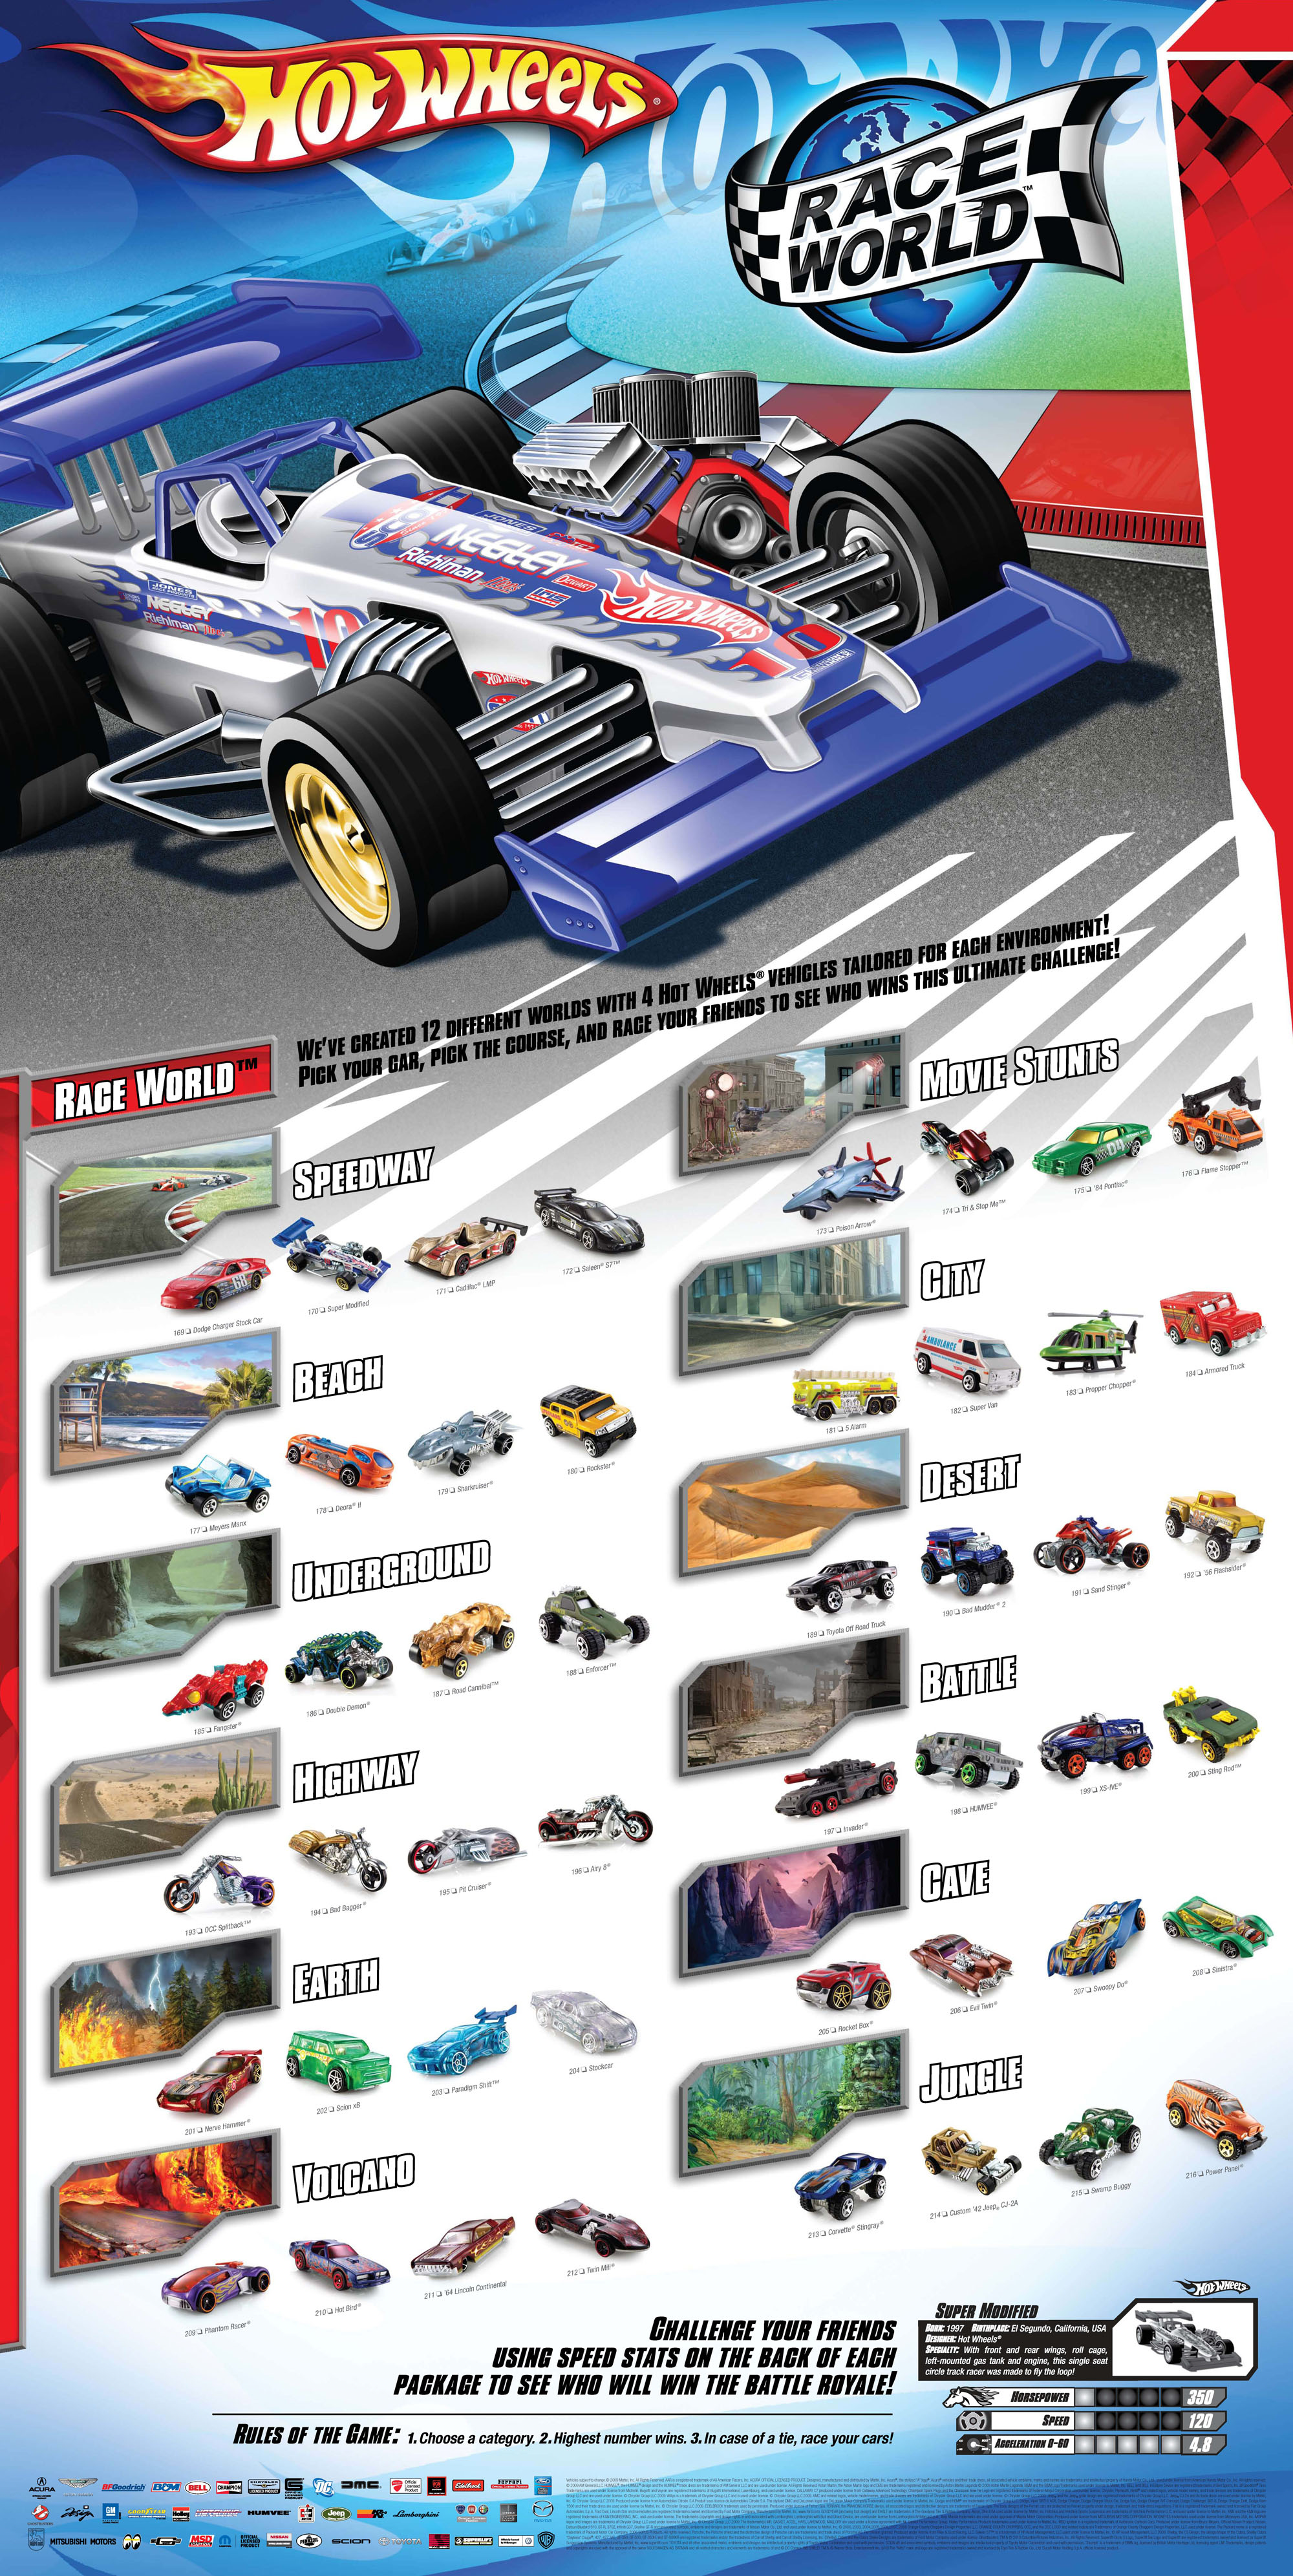 2010 Hot Wheels poster